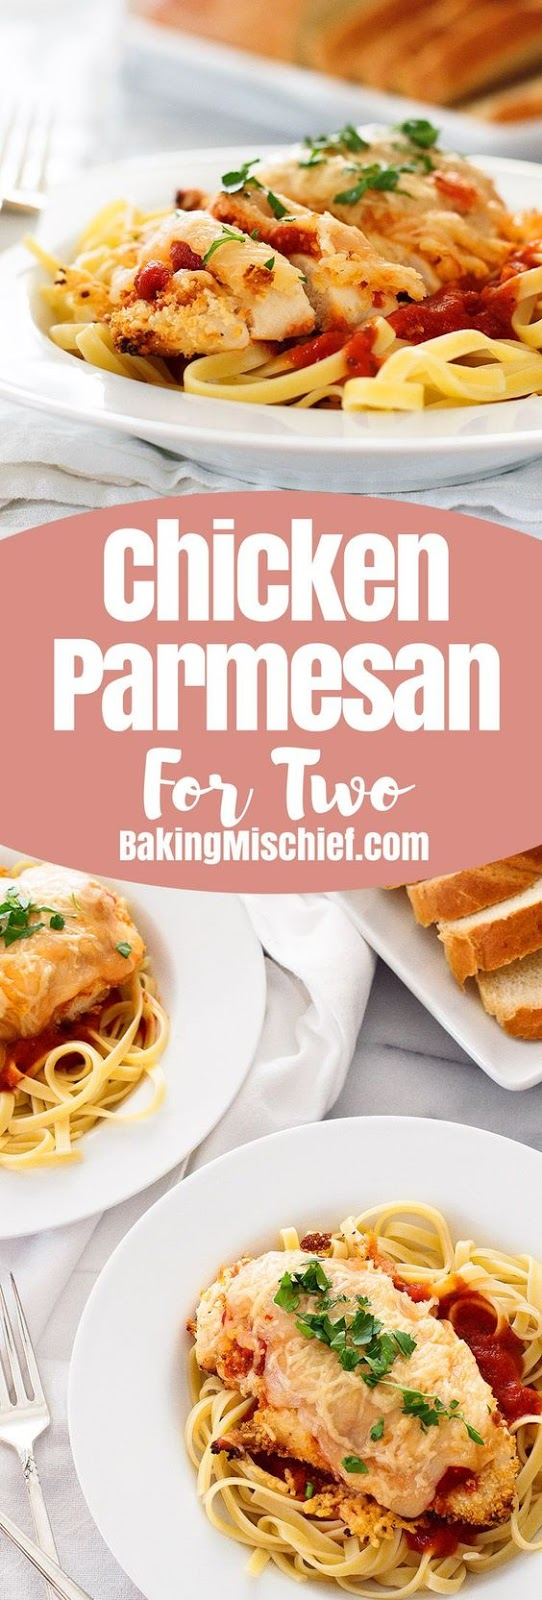 Baked Chicken Parmesan for Two Recipe